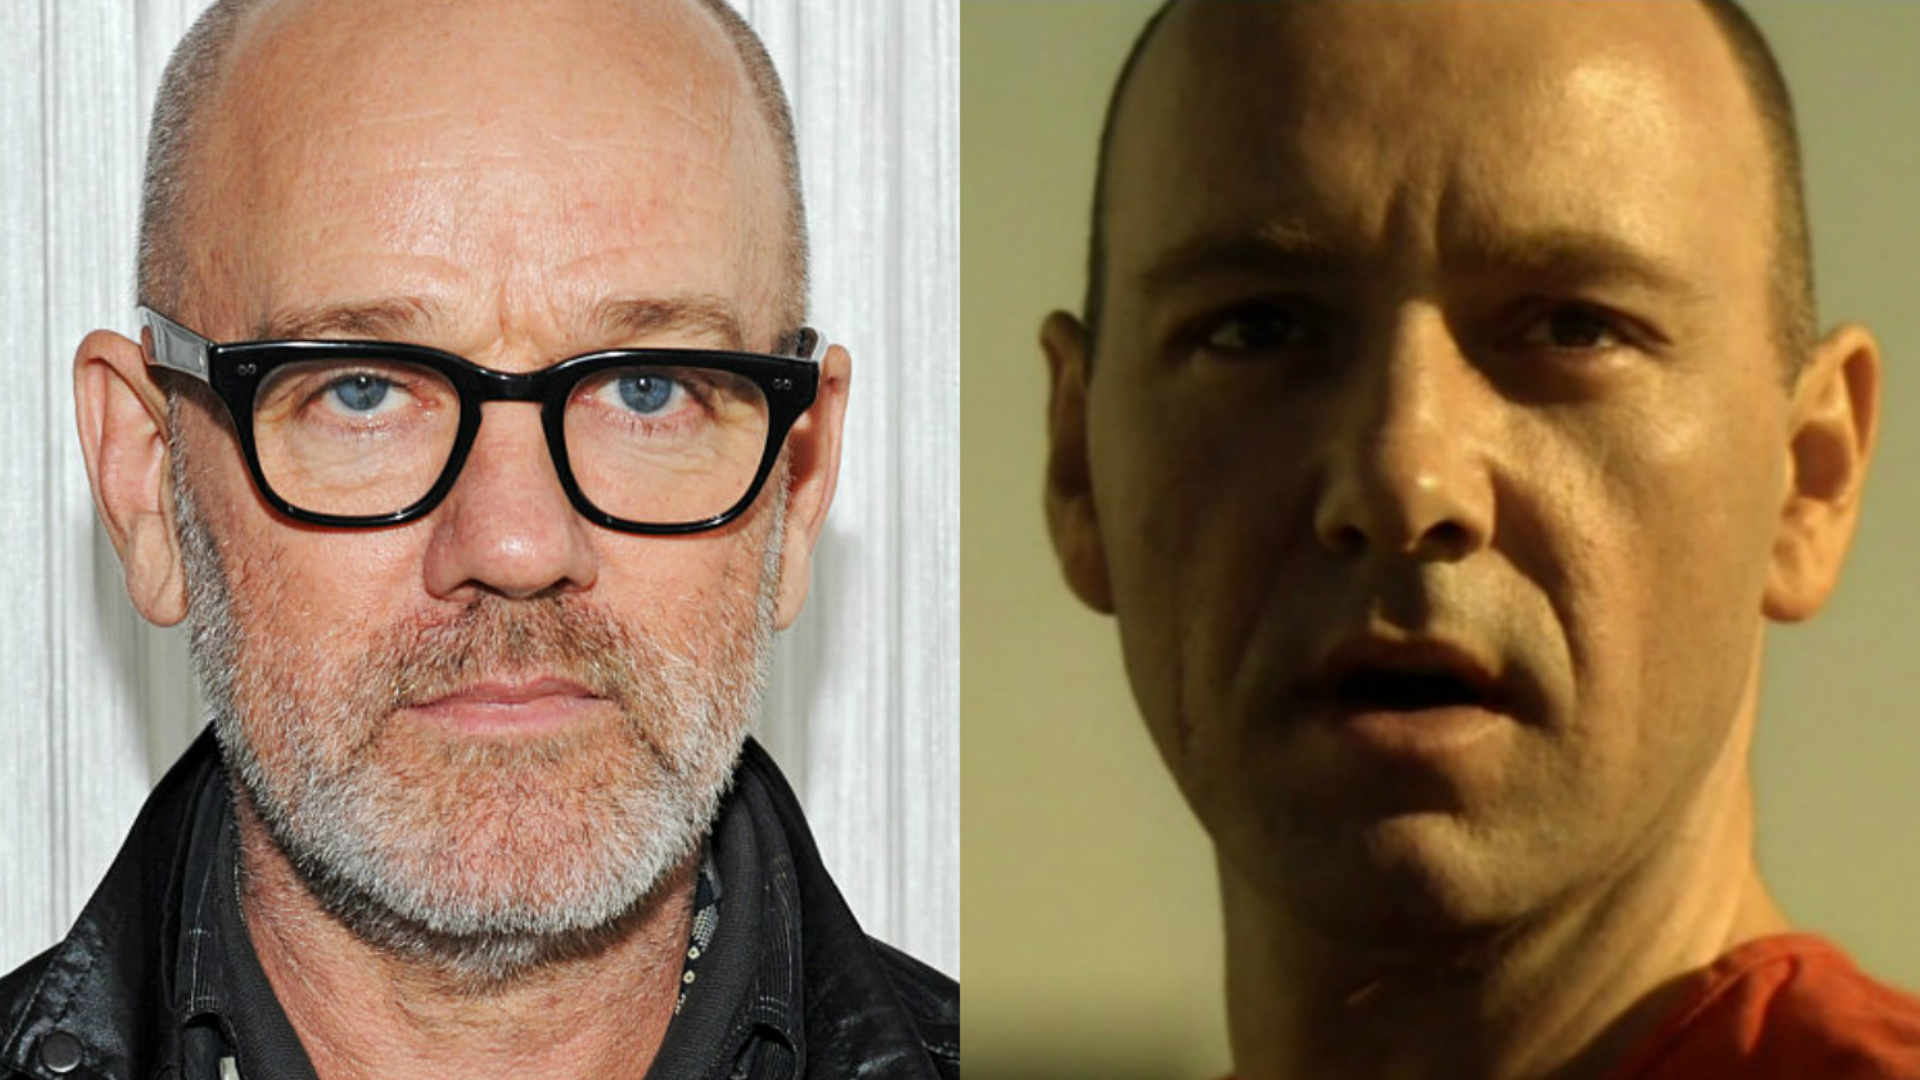 Michael Stipe and Kevin Spacey in Seven